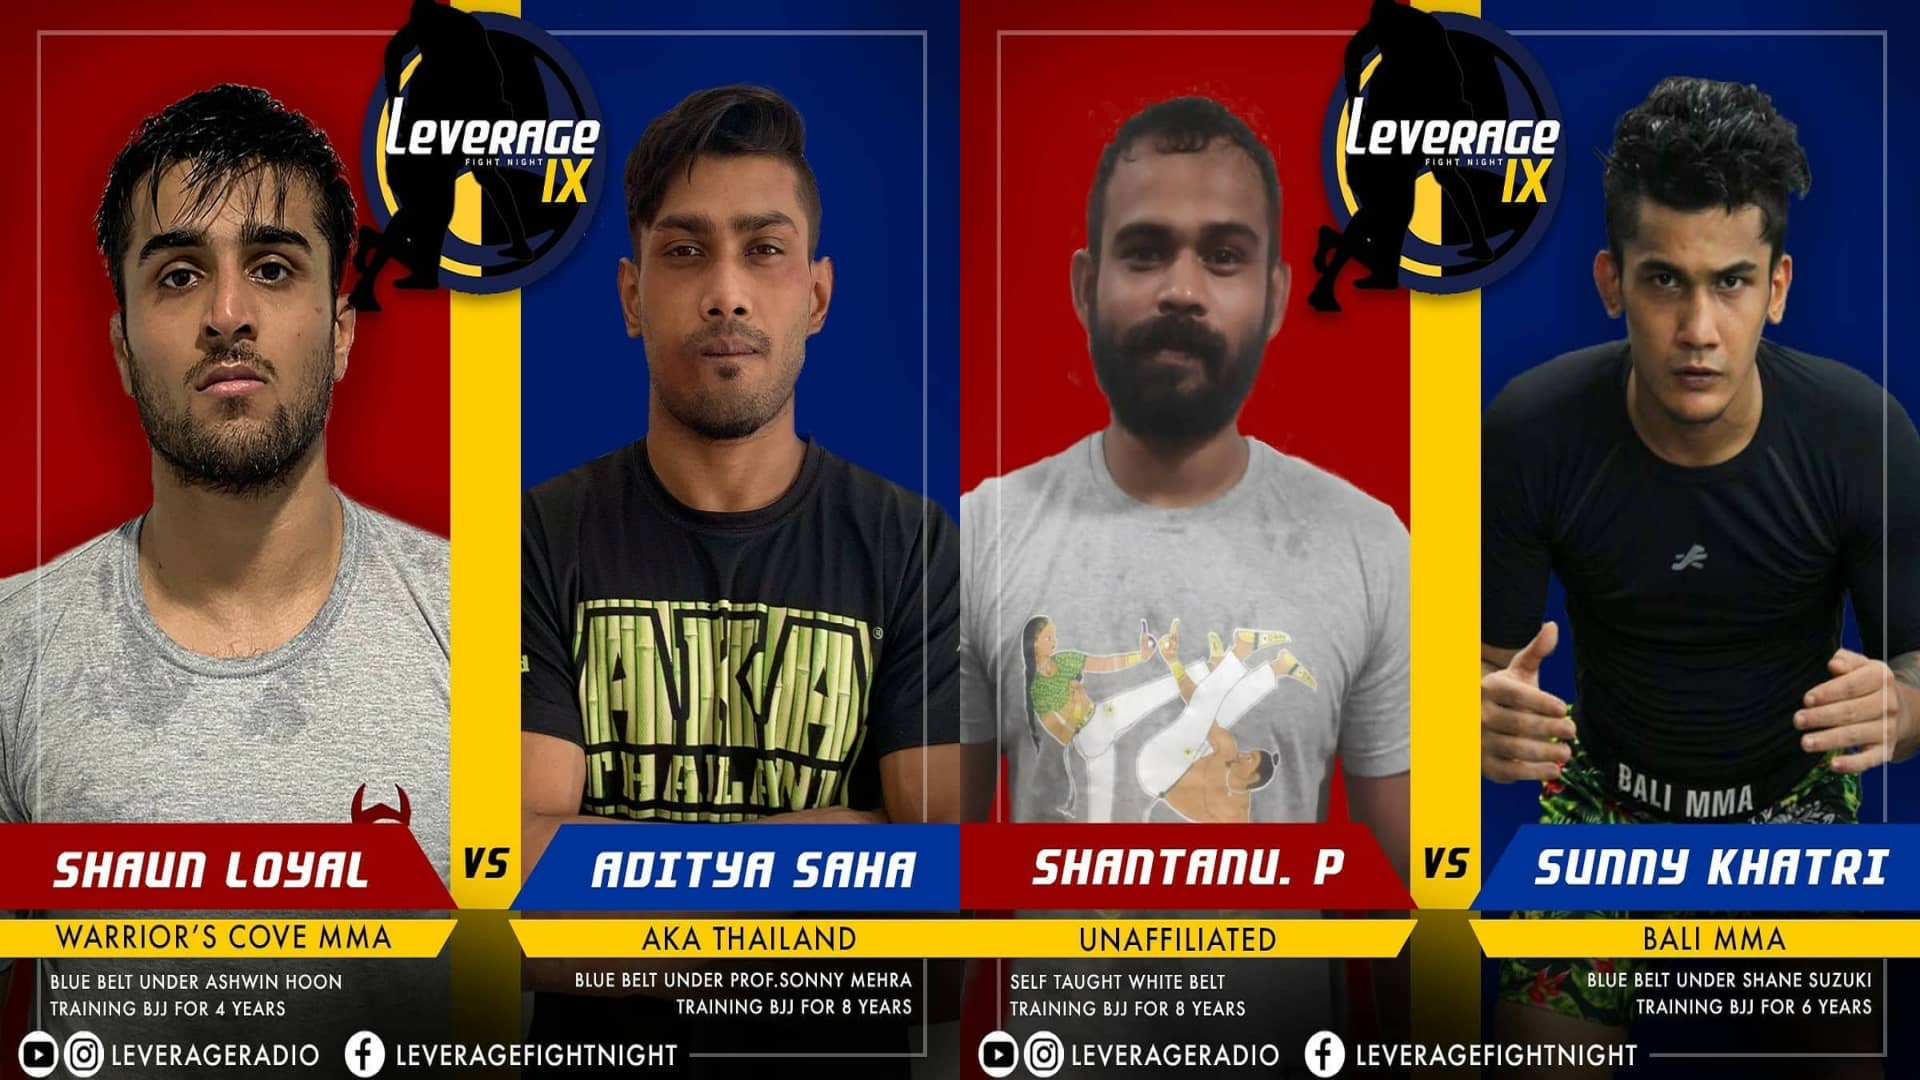 Leverage-Fight-Night-Shantanu-Pujari-Aditya-Saha